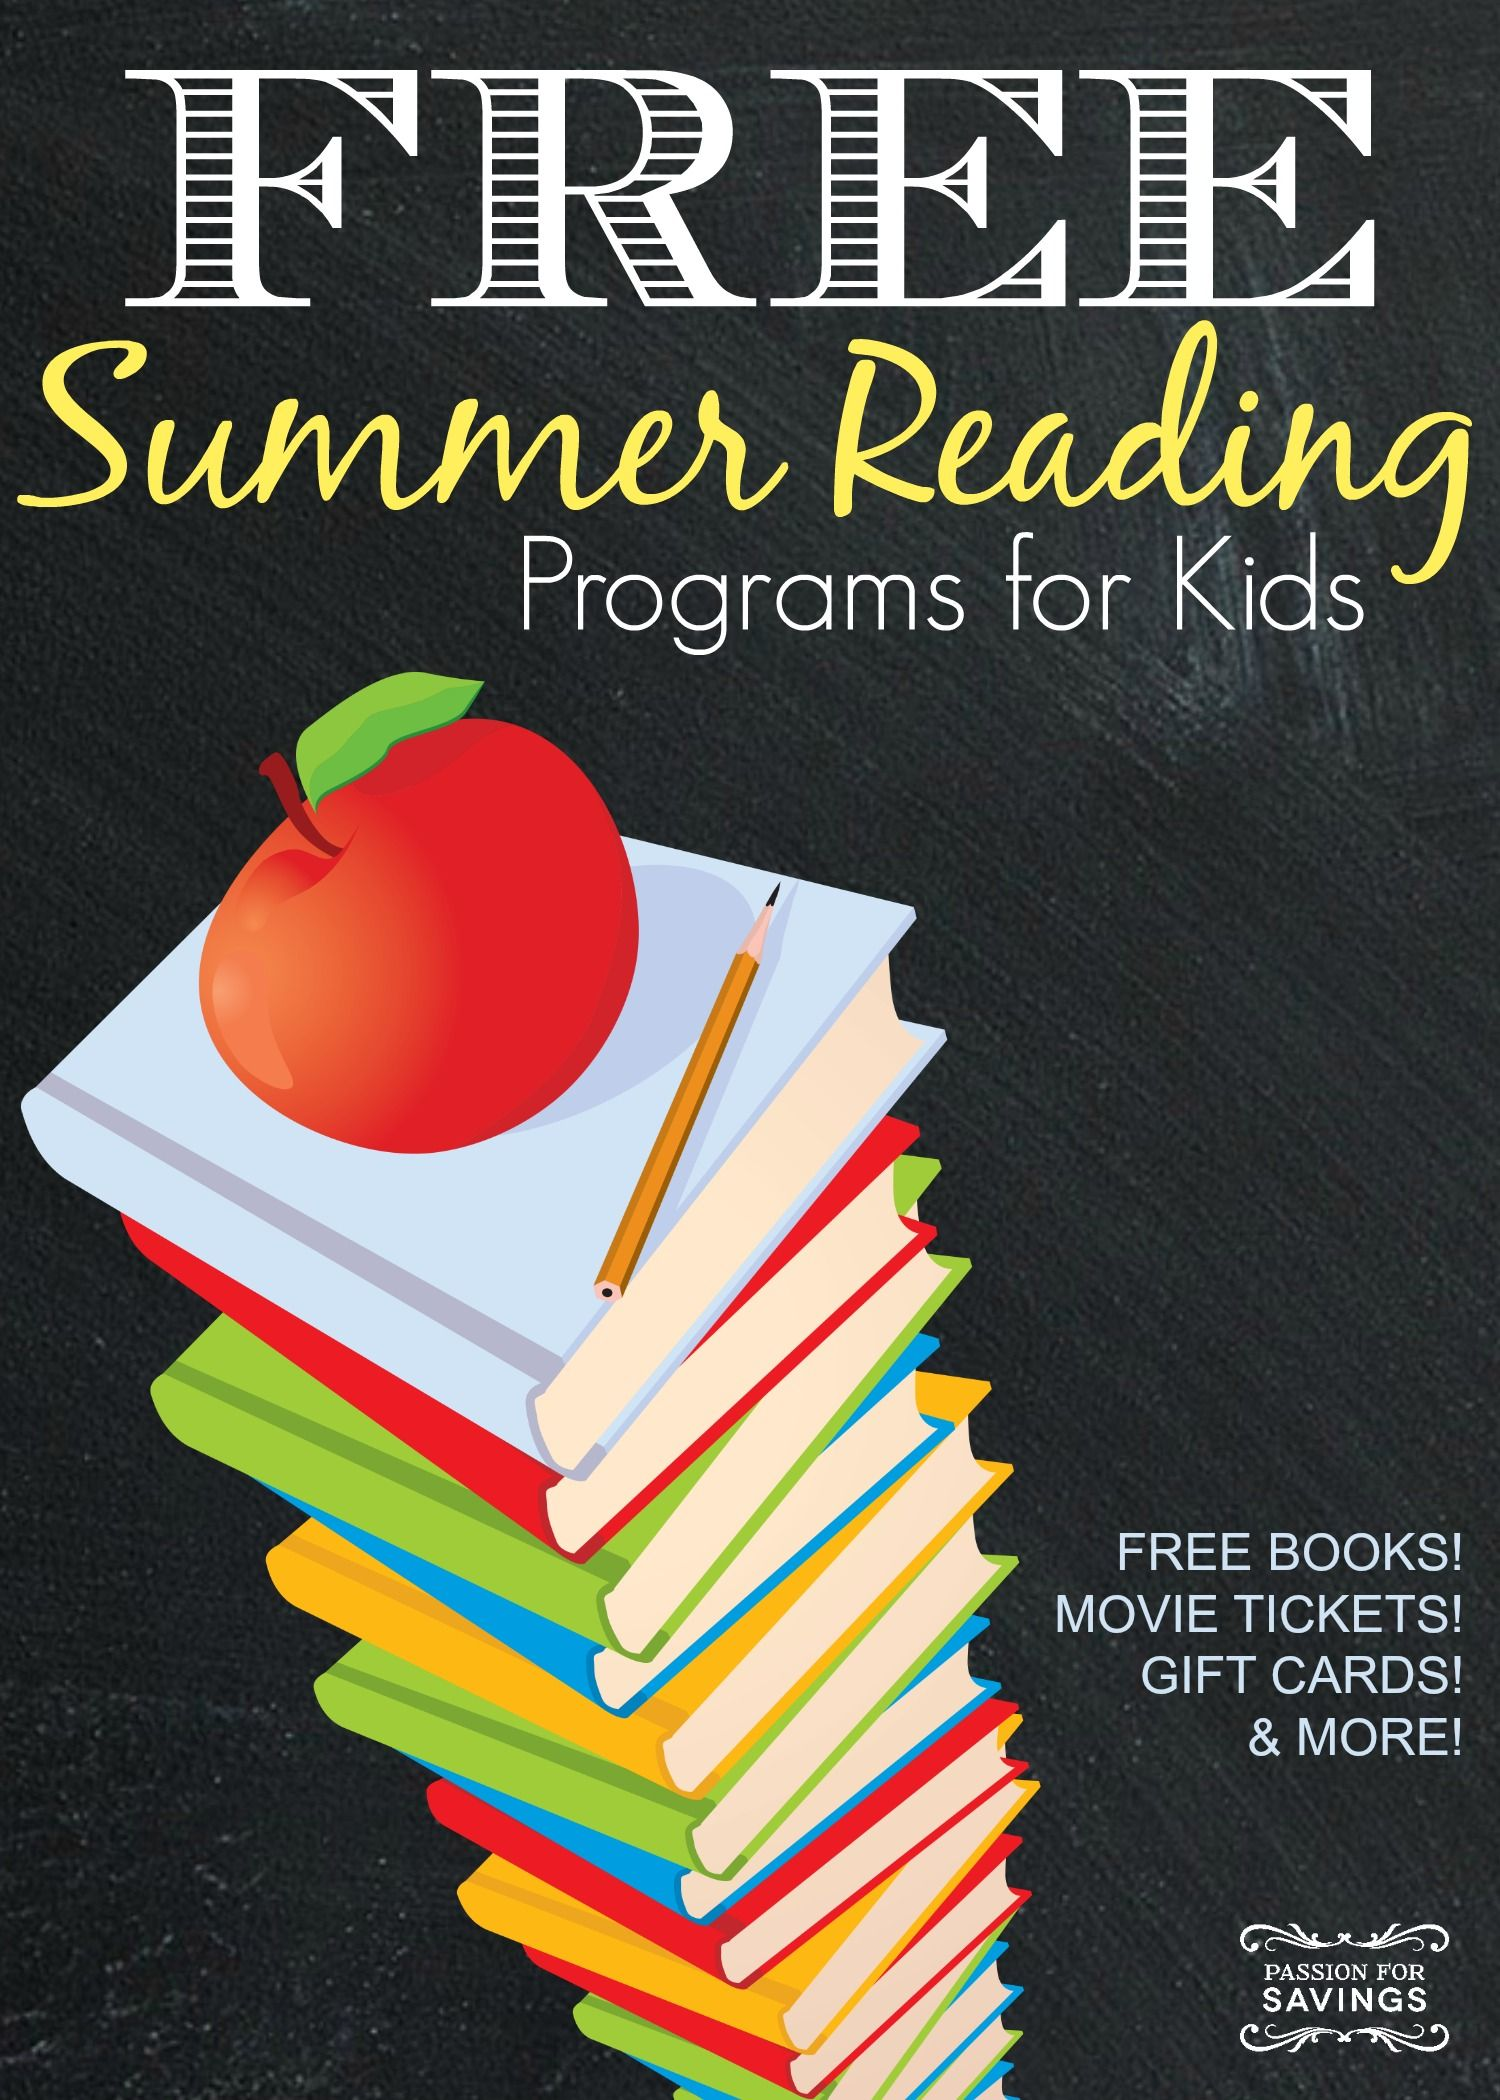 Check out the huge list of FREE Summer Reading Programs for Kids ...